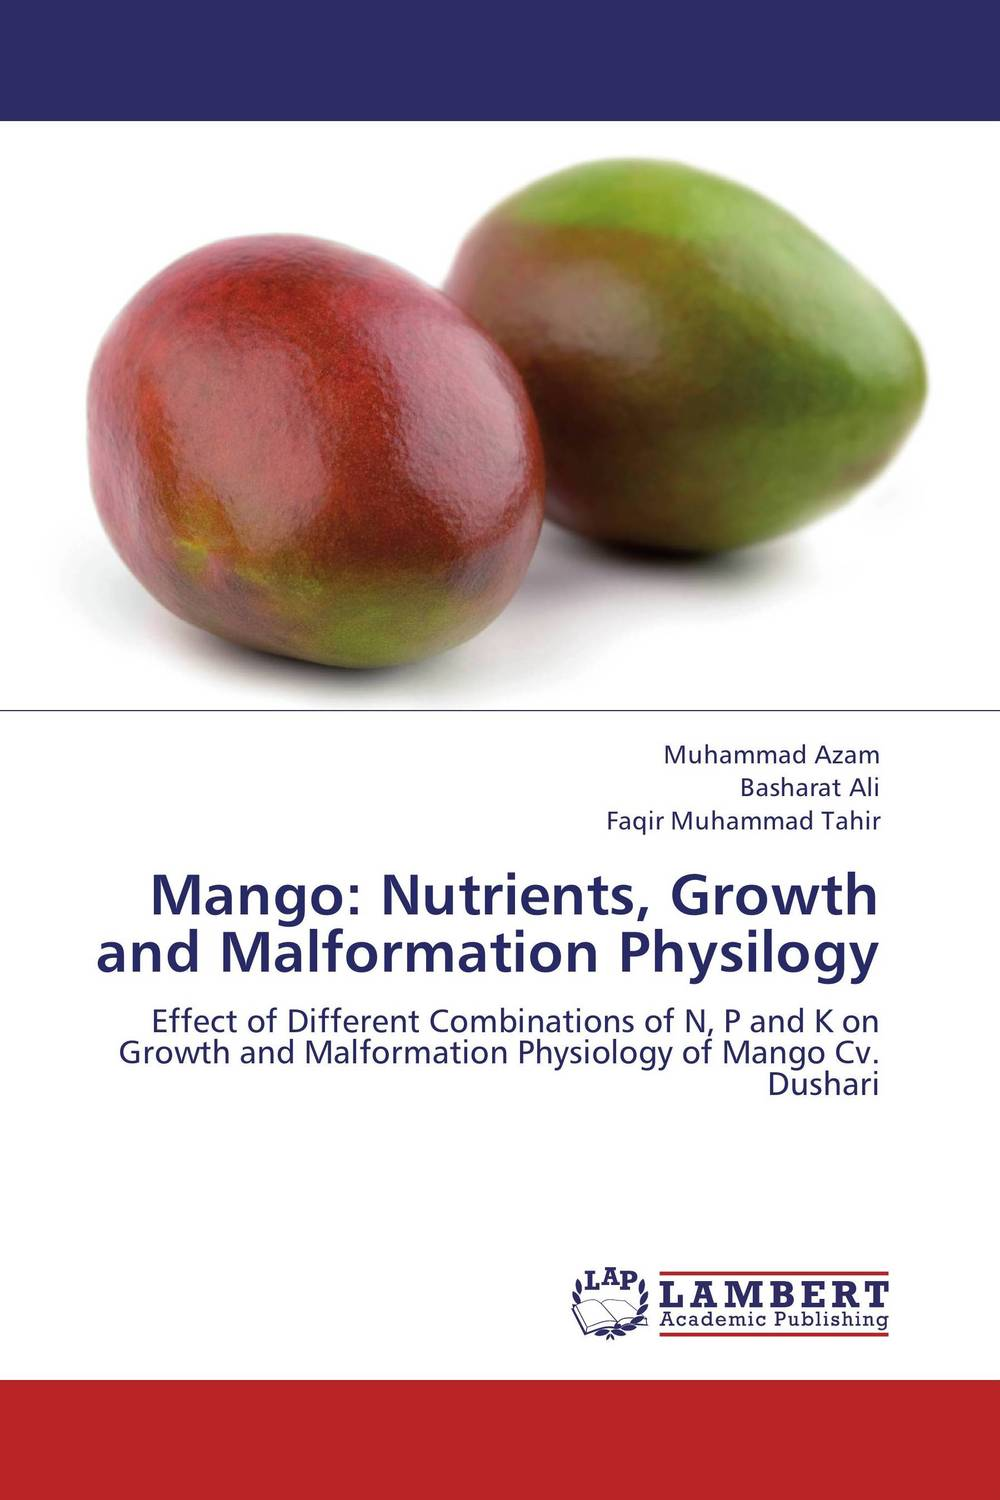 Mango: Nutrients, Growth and Malformation Physilogy zahid ali faqir muhammad tahir and saeed ahmed study to improve quality and production of mangifera indica l